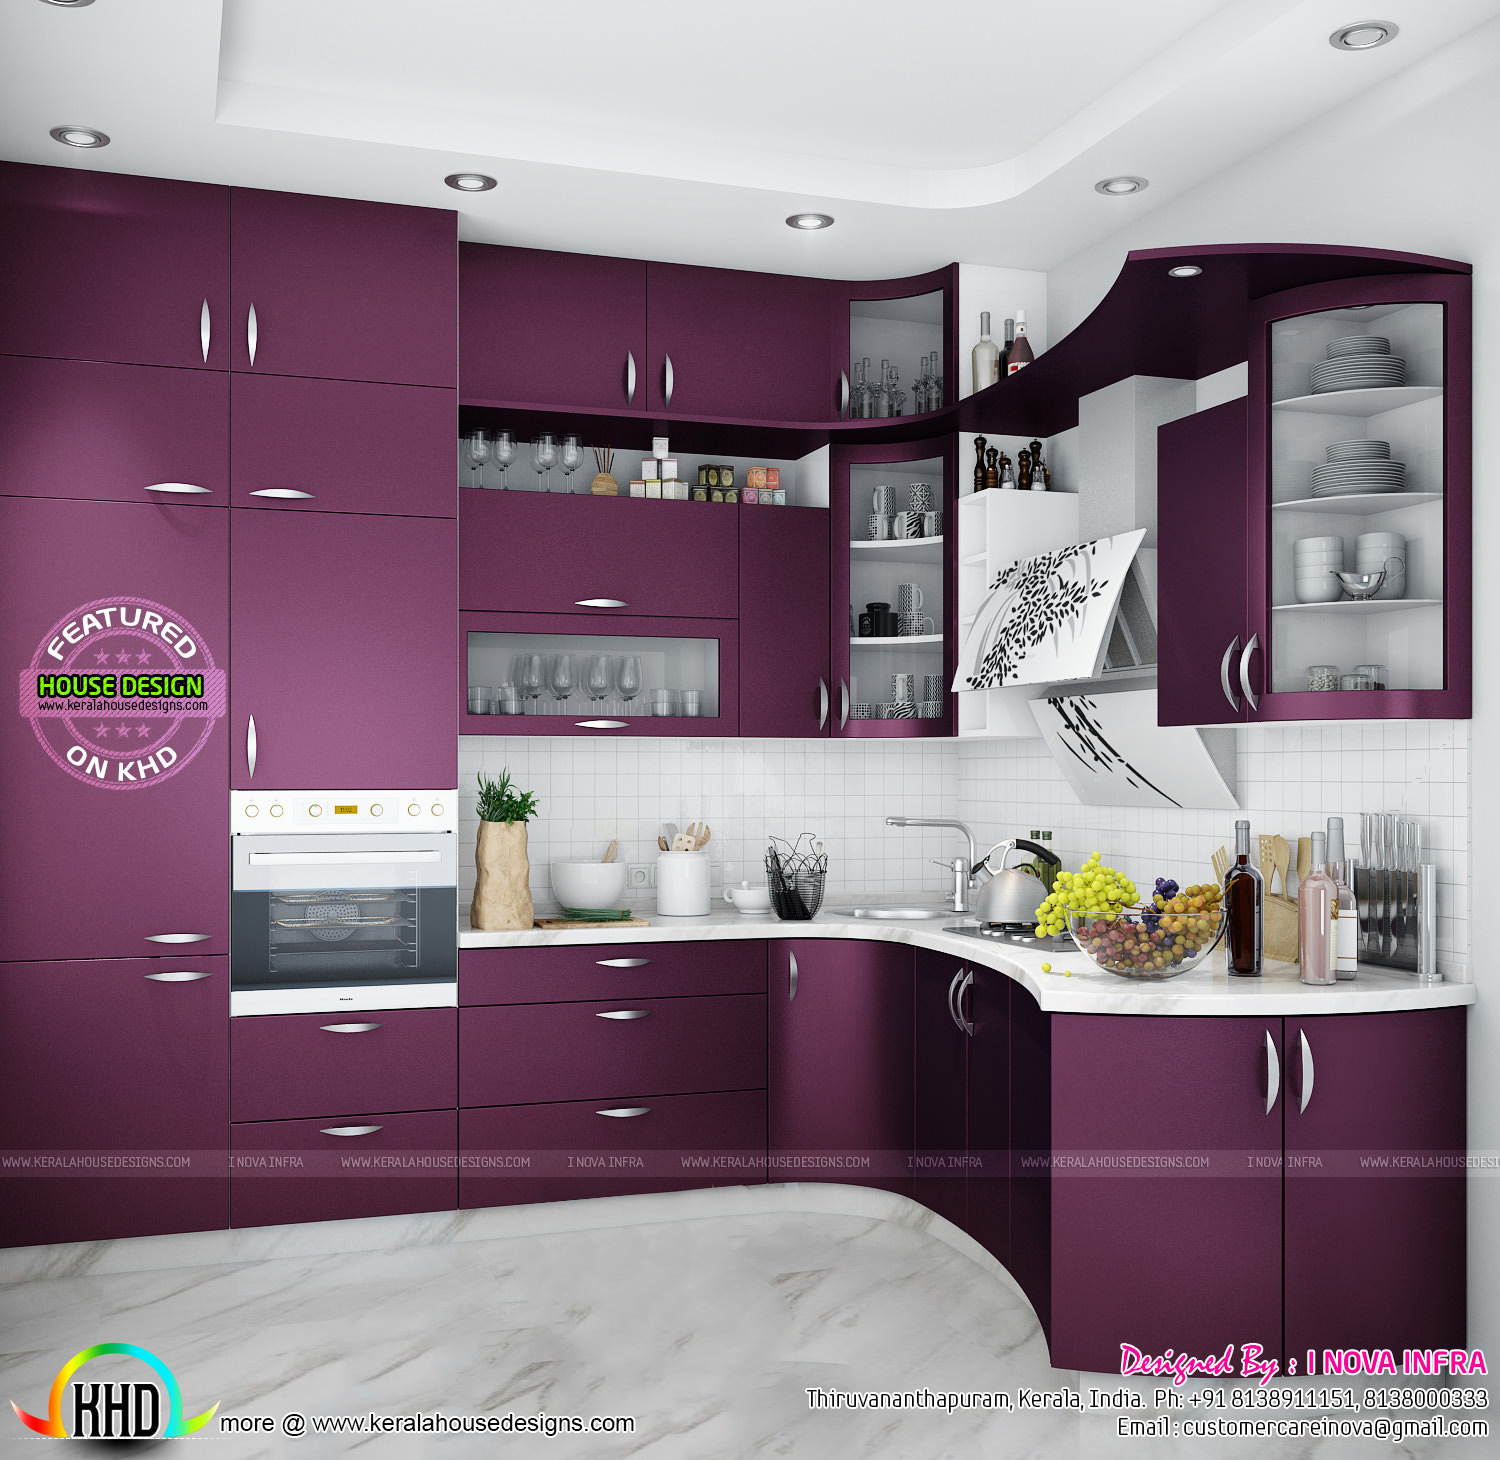 Cost Of Kitchen Cabinets In Kerala Modular Kitchen Kerala Kerala Home Design And Floor Plans